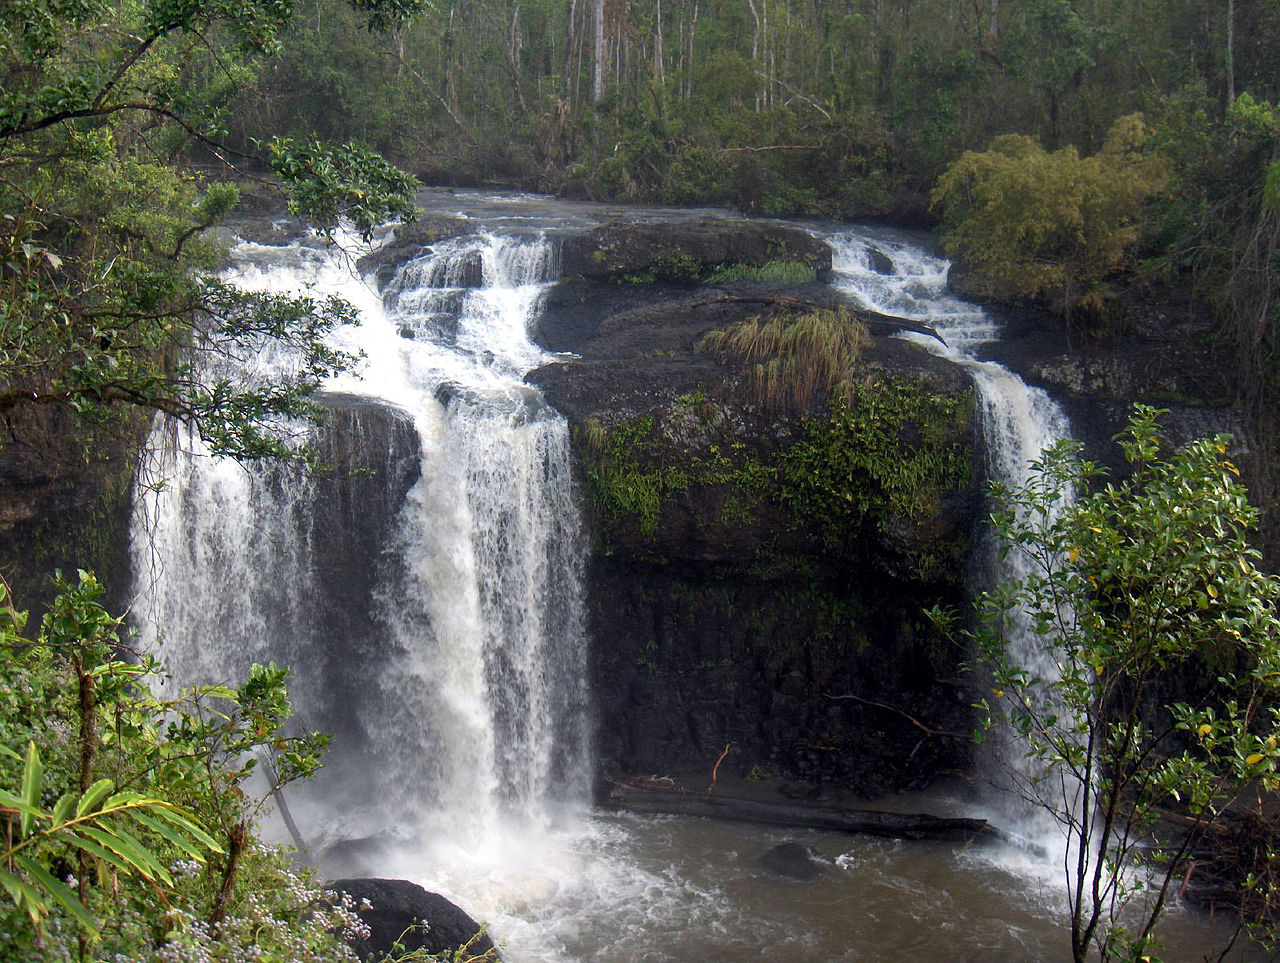 Atherton Tablelands Australia  city photos gallery : Original file ‎ 1,600 × 1,204 pixels, file size: 539 KB, MIME type ...